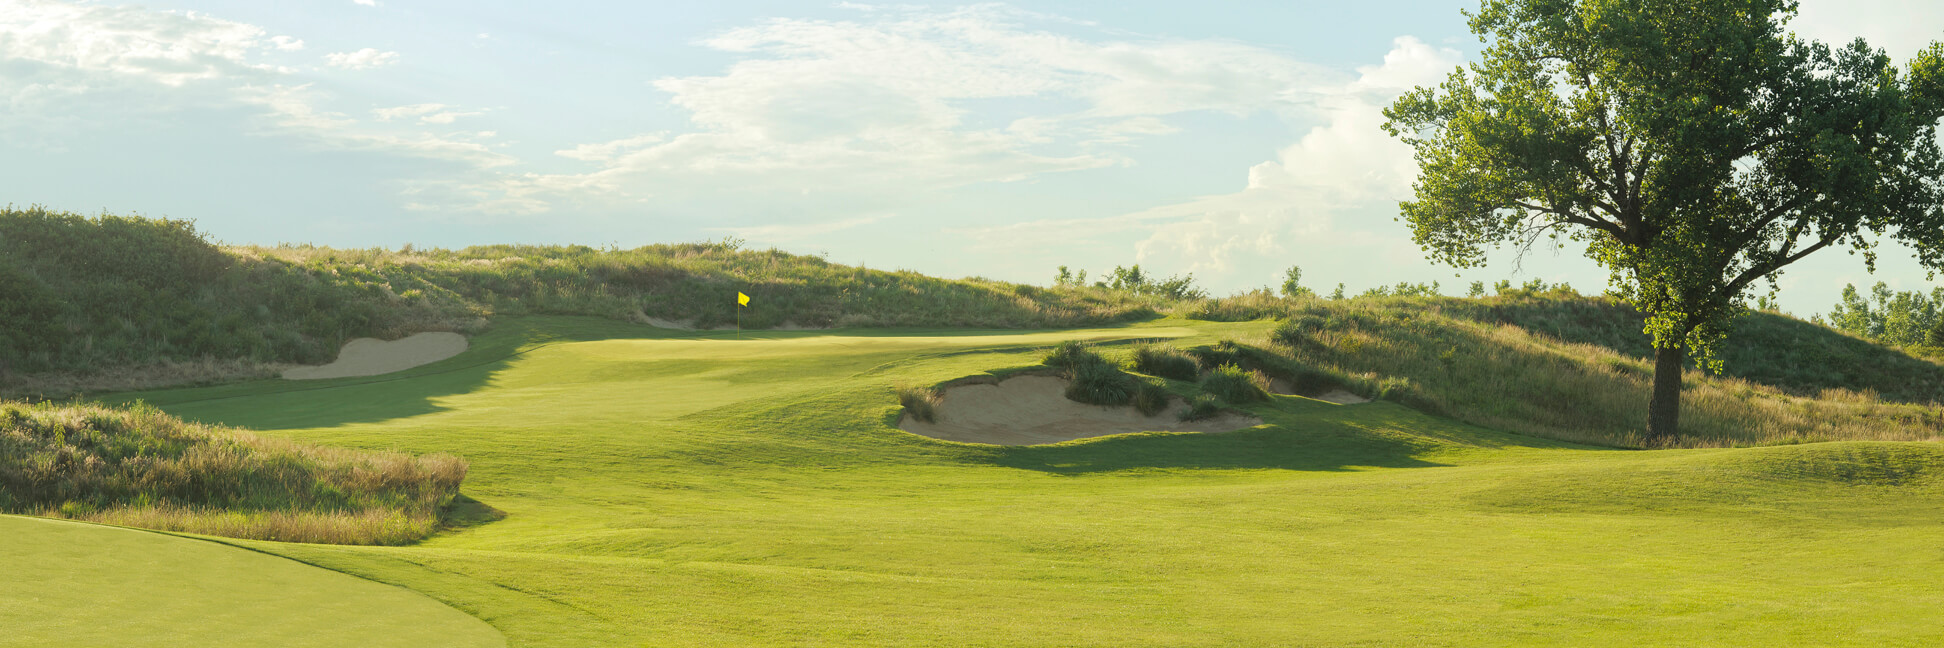 Golf Course Image - Prairie Dunes Country Club No. 4